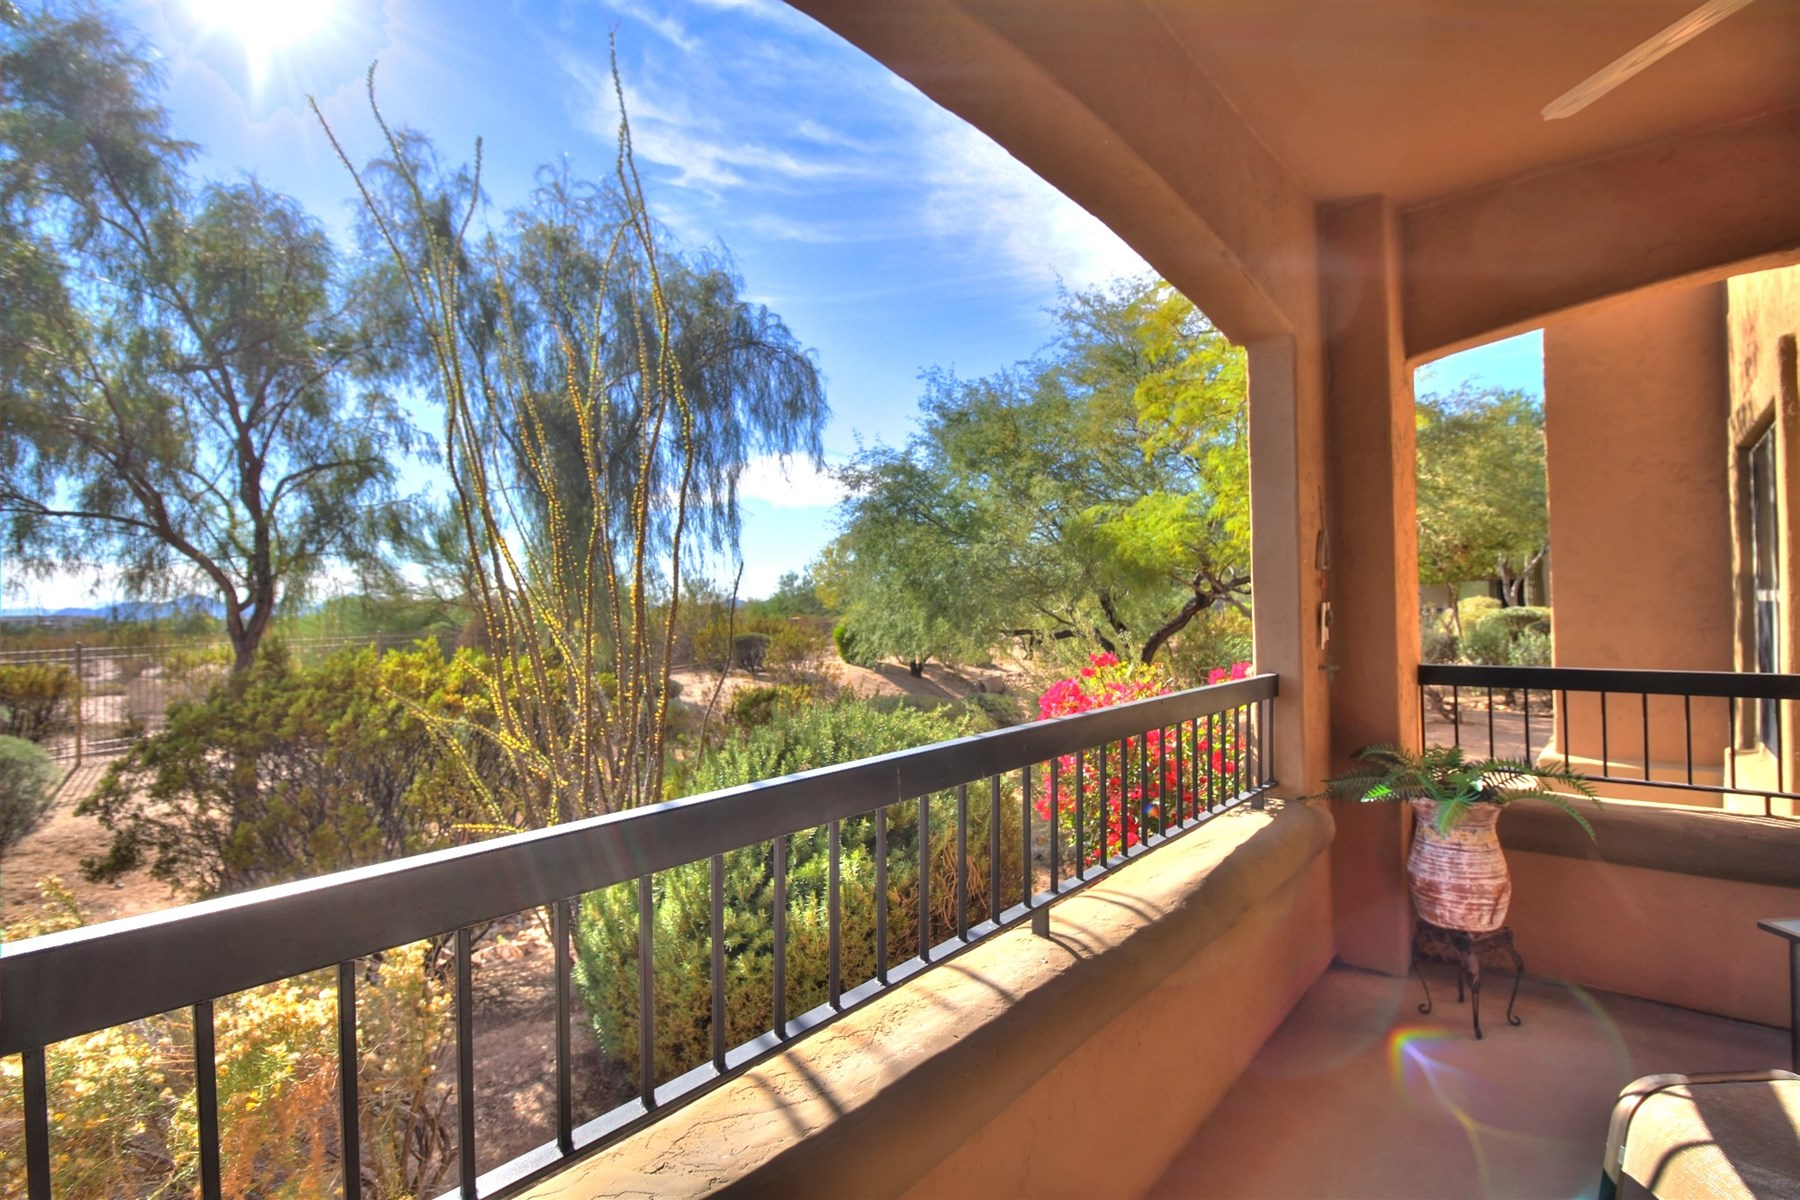 Apartment for Sale at First floor single level living in the community of the Village at Grayhawk 19700 N 76TH ST #1029 Scottsdale, Arizona 85255 United States